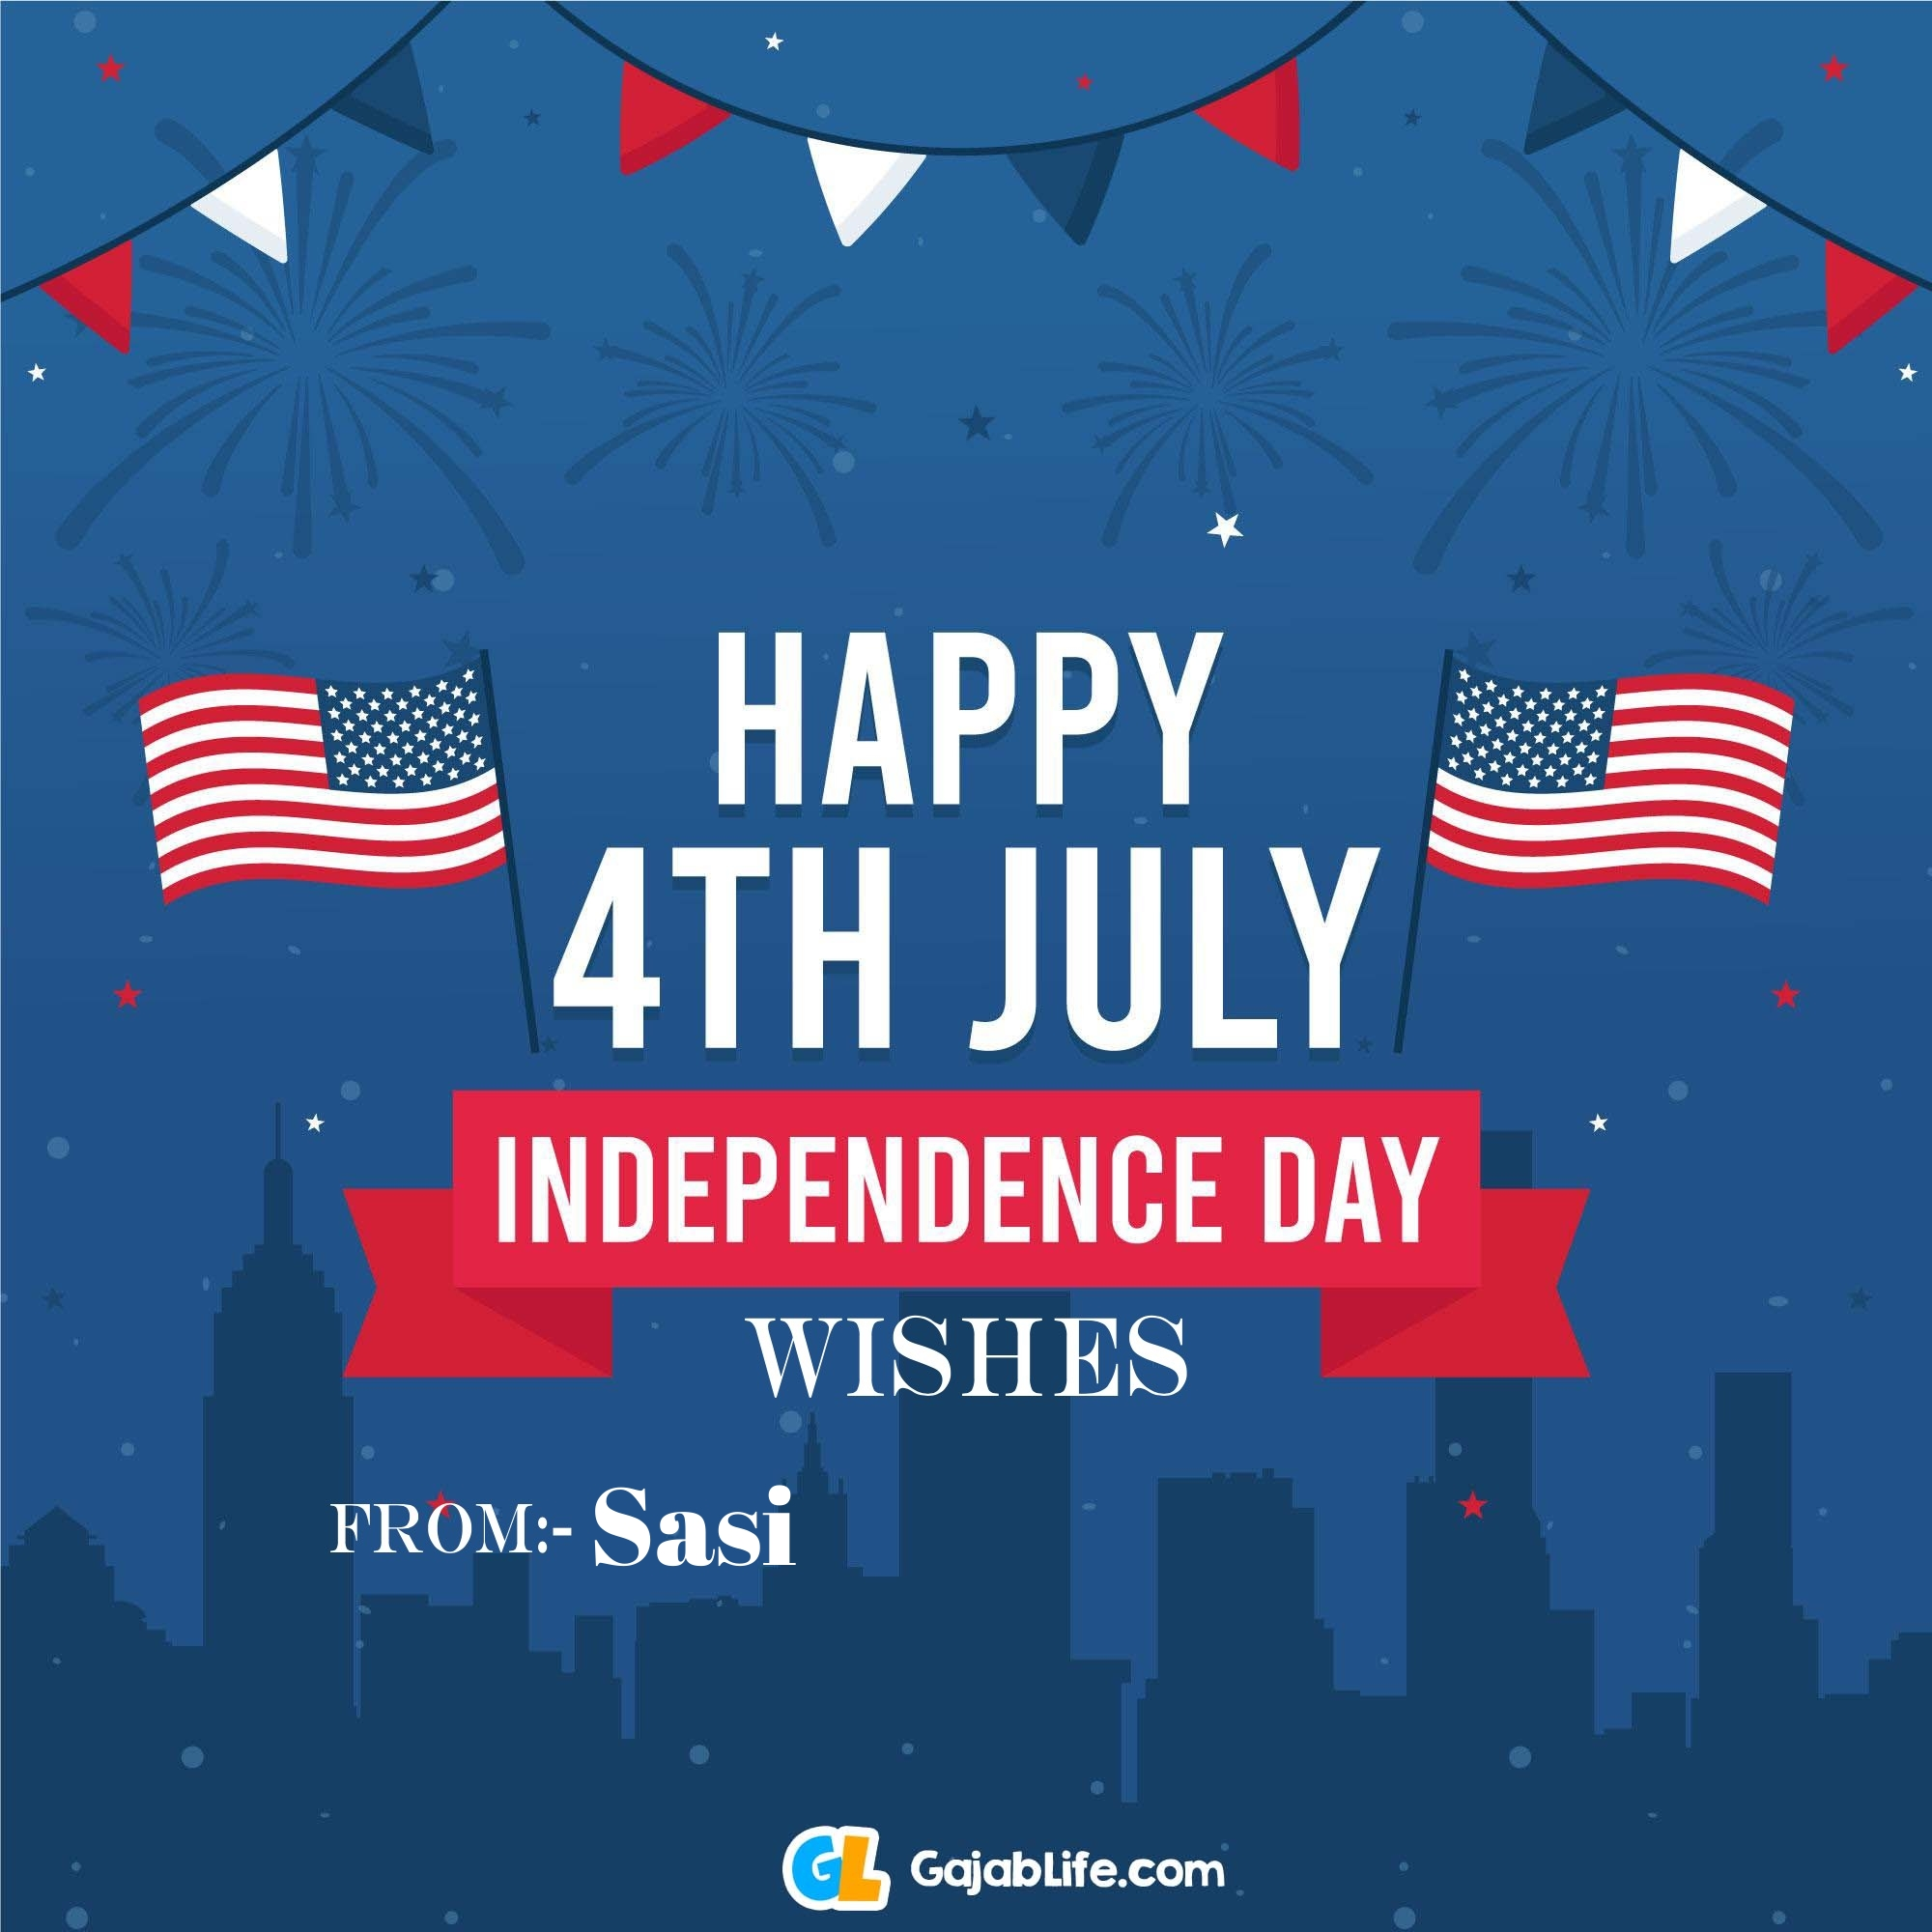 Sasi happy independence day united states of america images